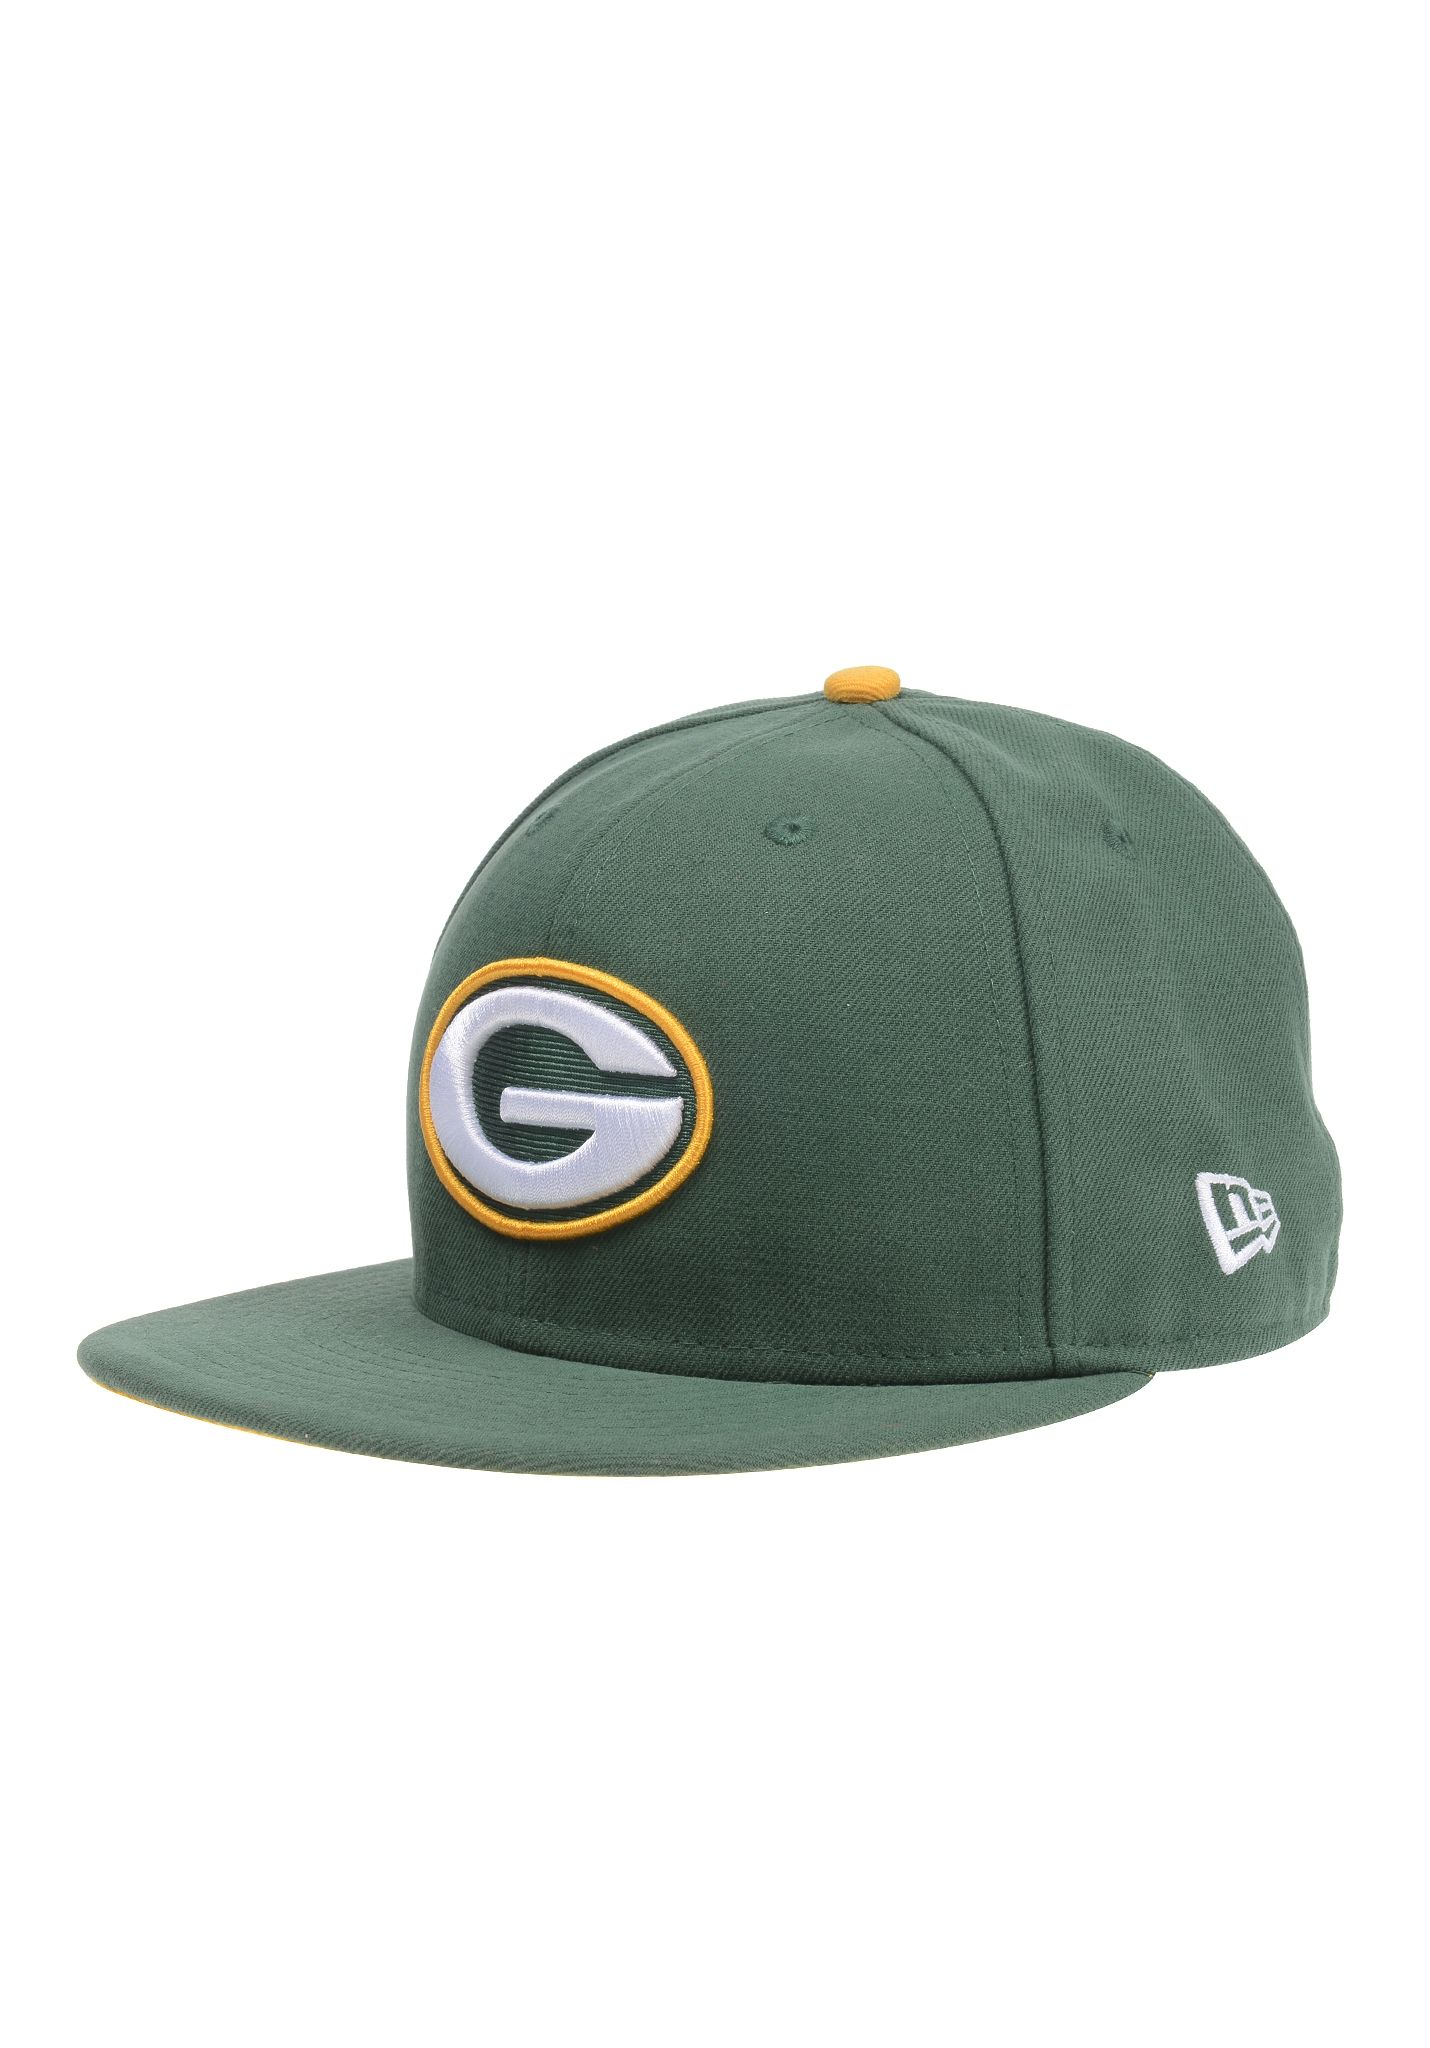 9a62561d1d3b4 NEW Era 59Fifty Green Bay Packers - Fitted Cap - Green - Planet Sports